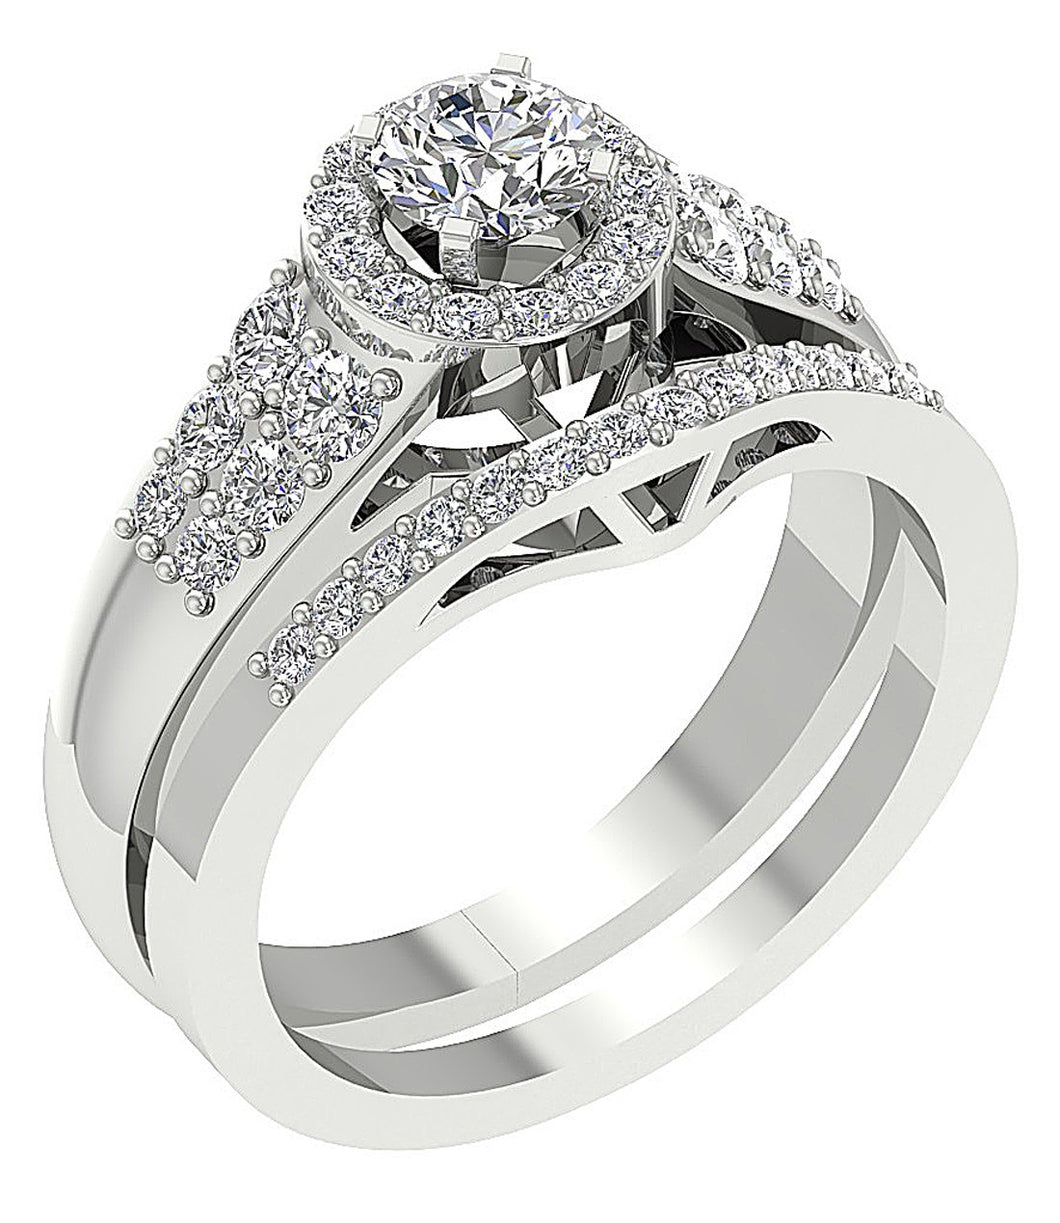 14k White Gold Unique Style Bridal Ring Set